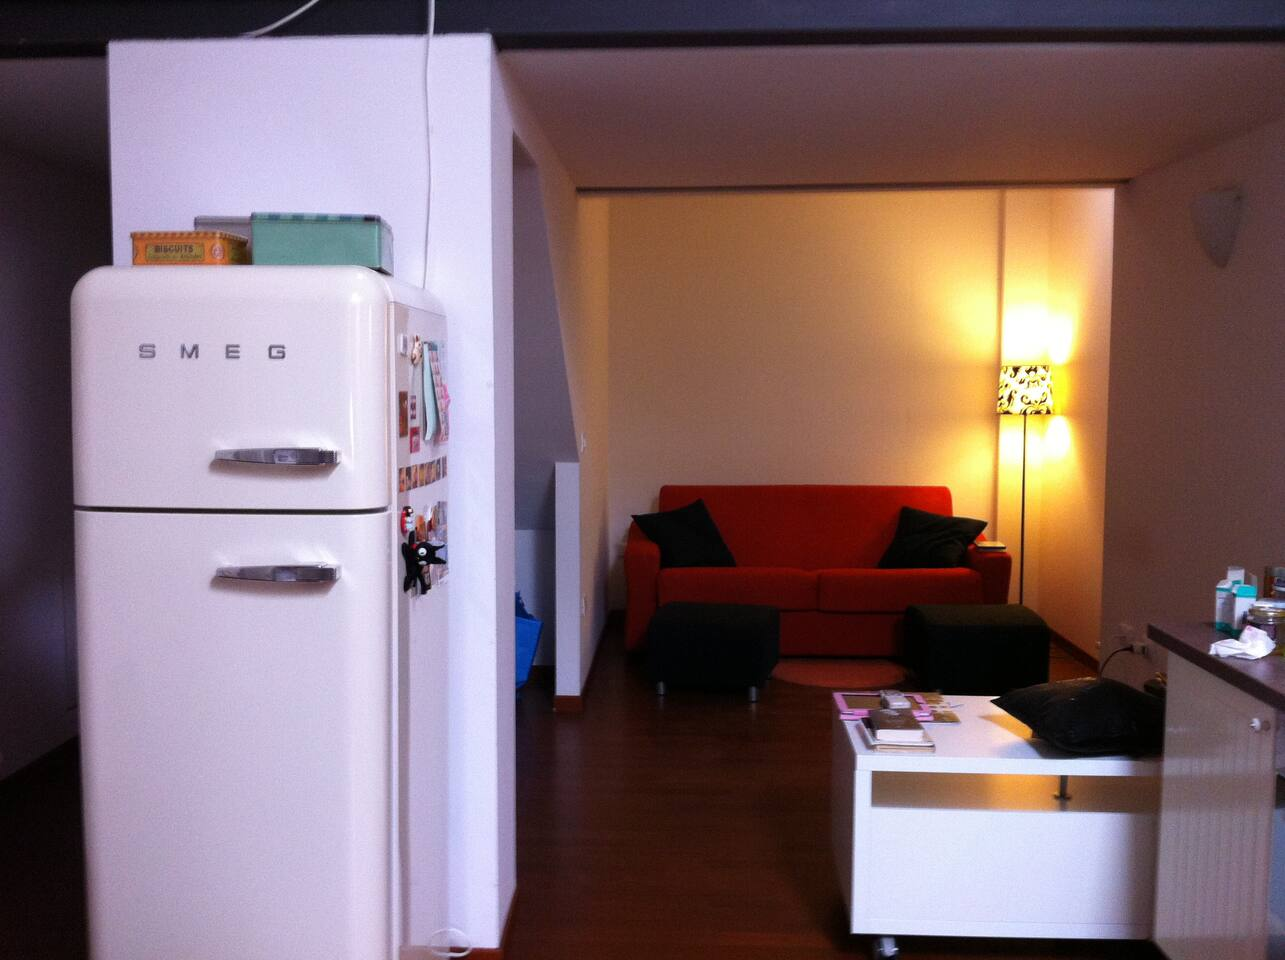 This is the view of the living room from the kitchen. It is a very luminous and bright space.